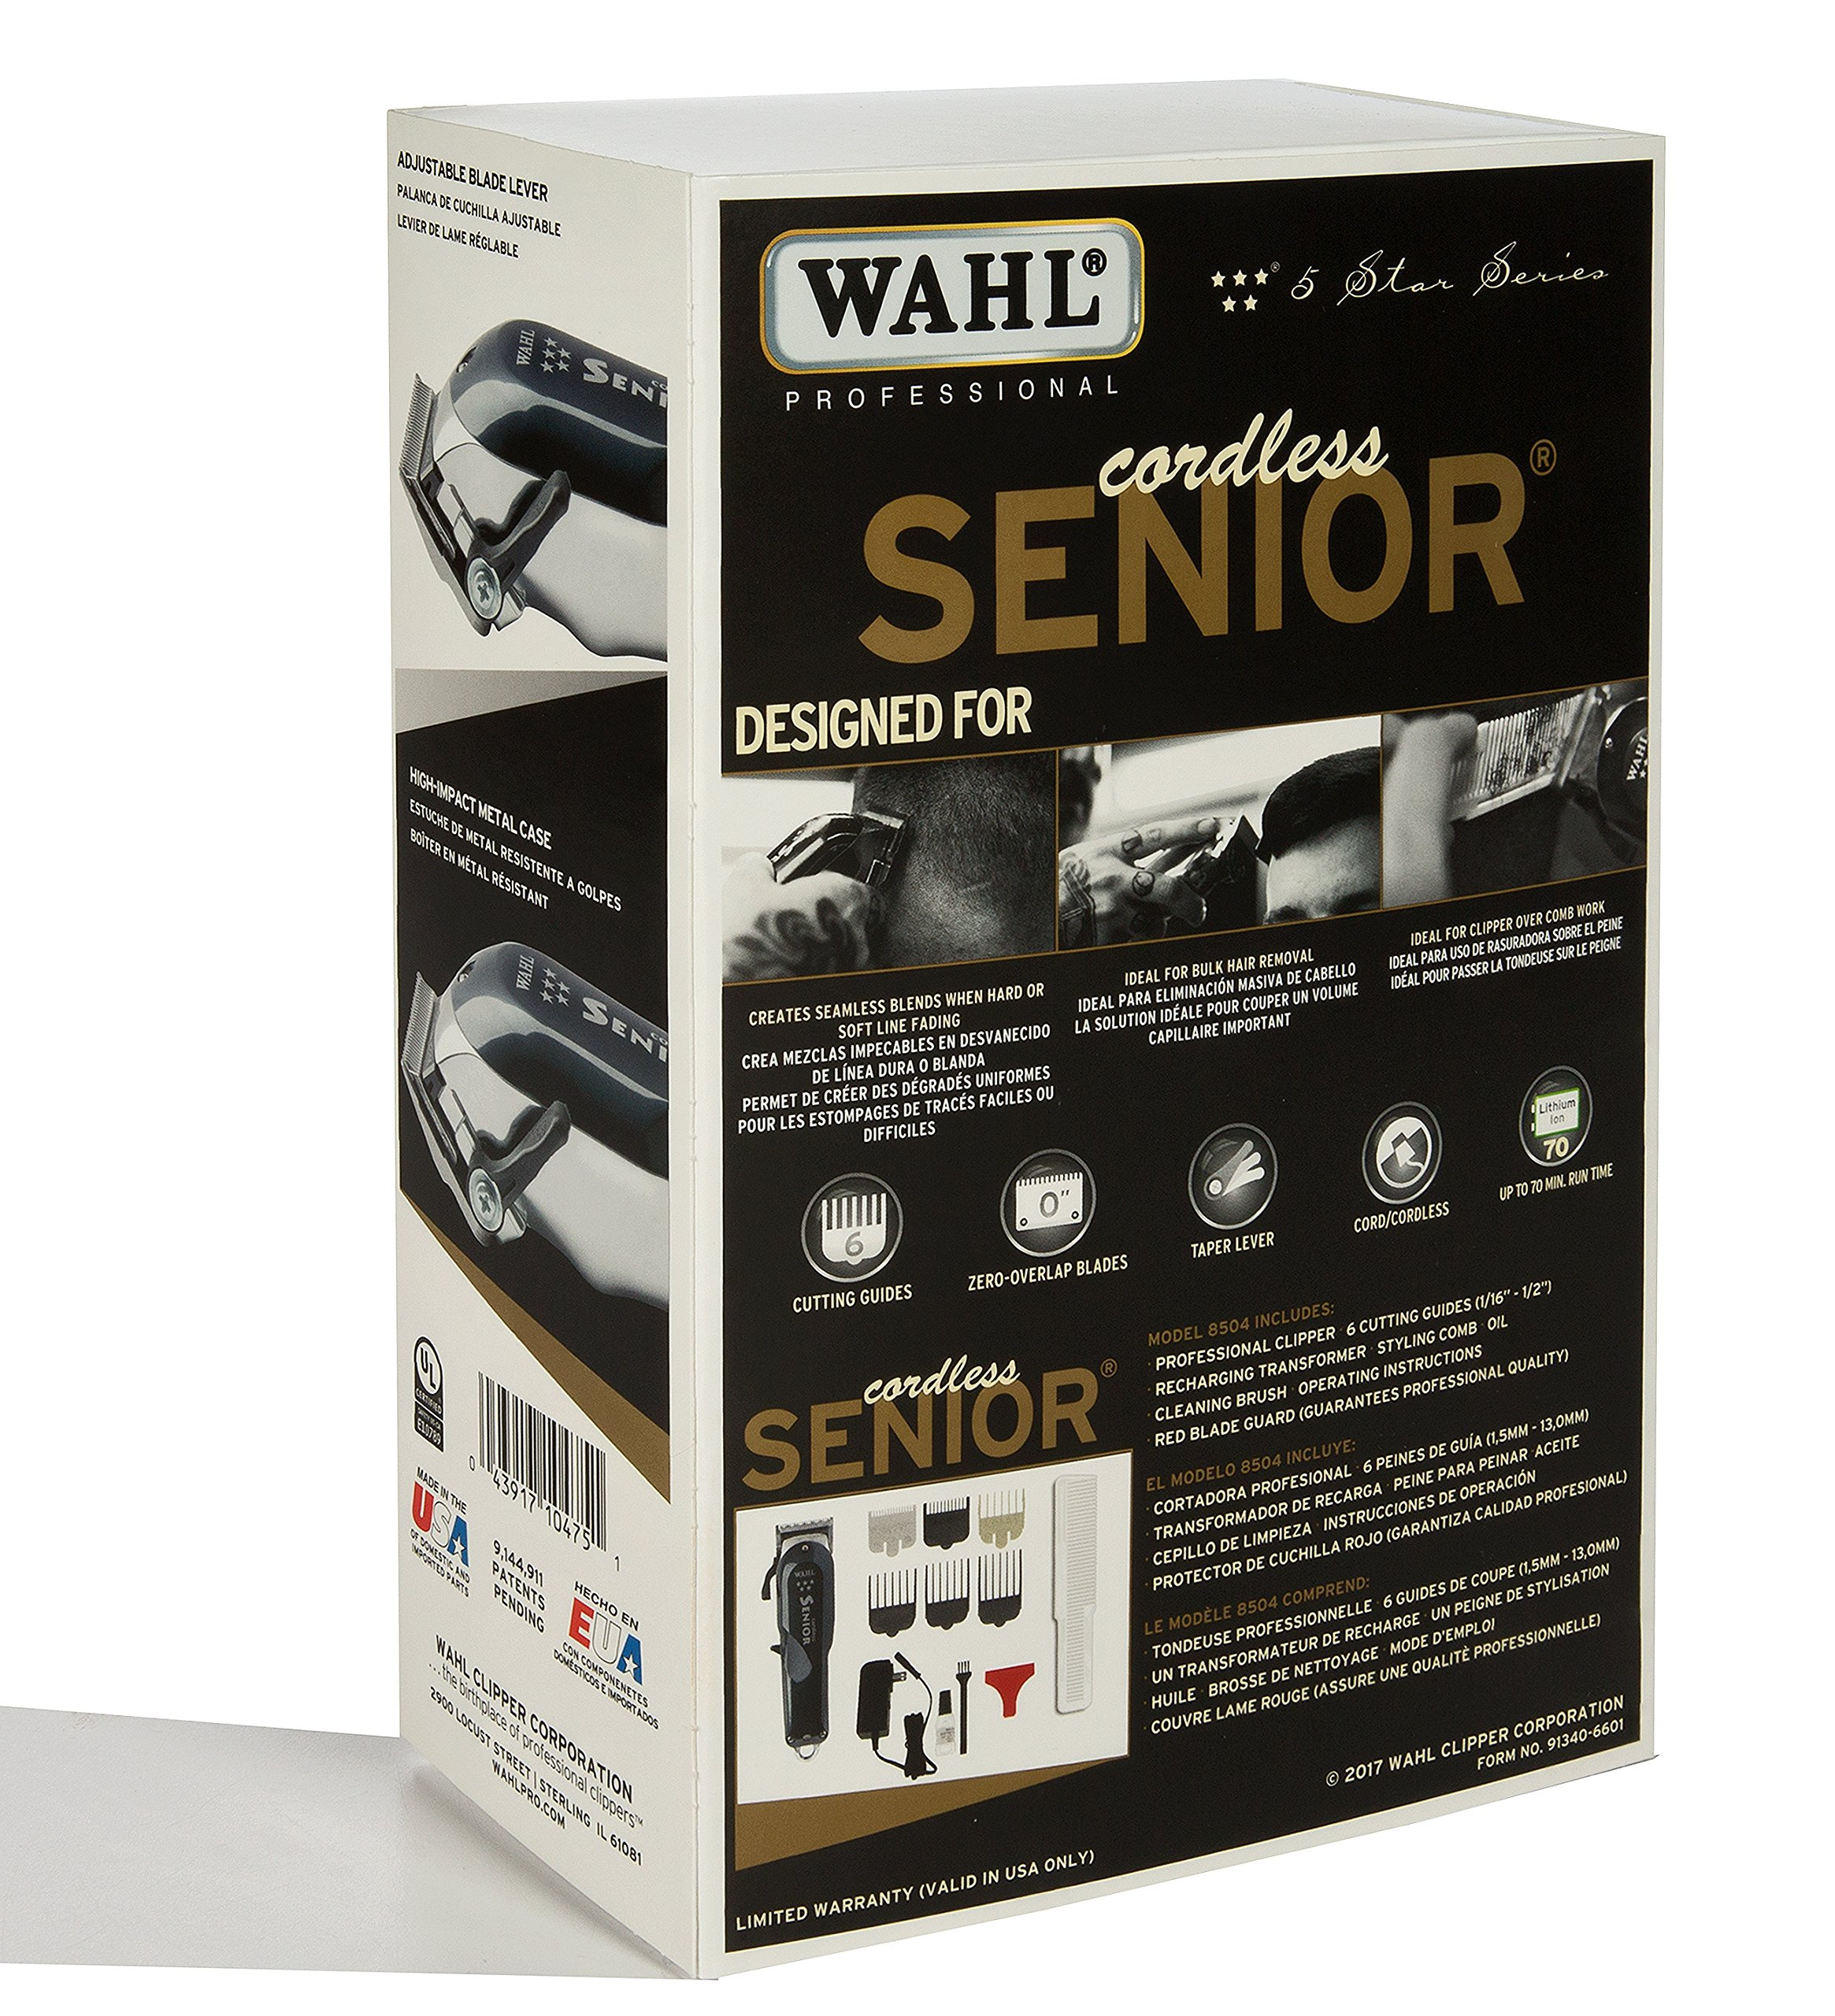 Wahl Professional 5-Star Series Cordless Senior Clipper #8504 – Great for Professional Stylists and Barbers – 70 Minute Run Time